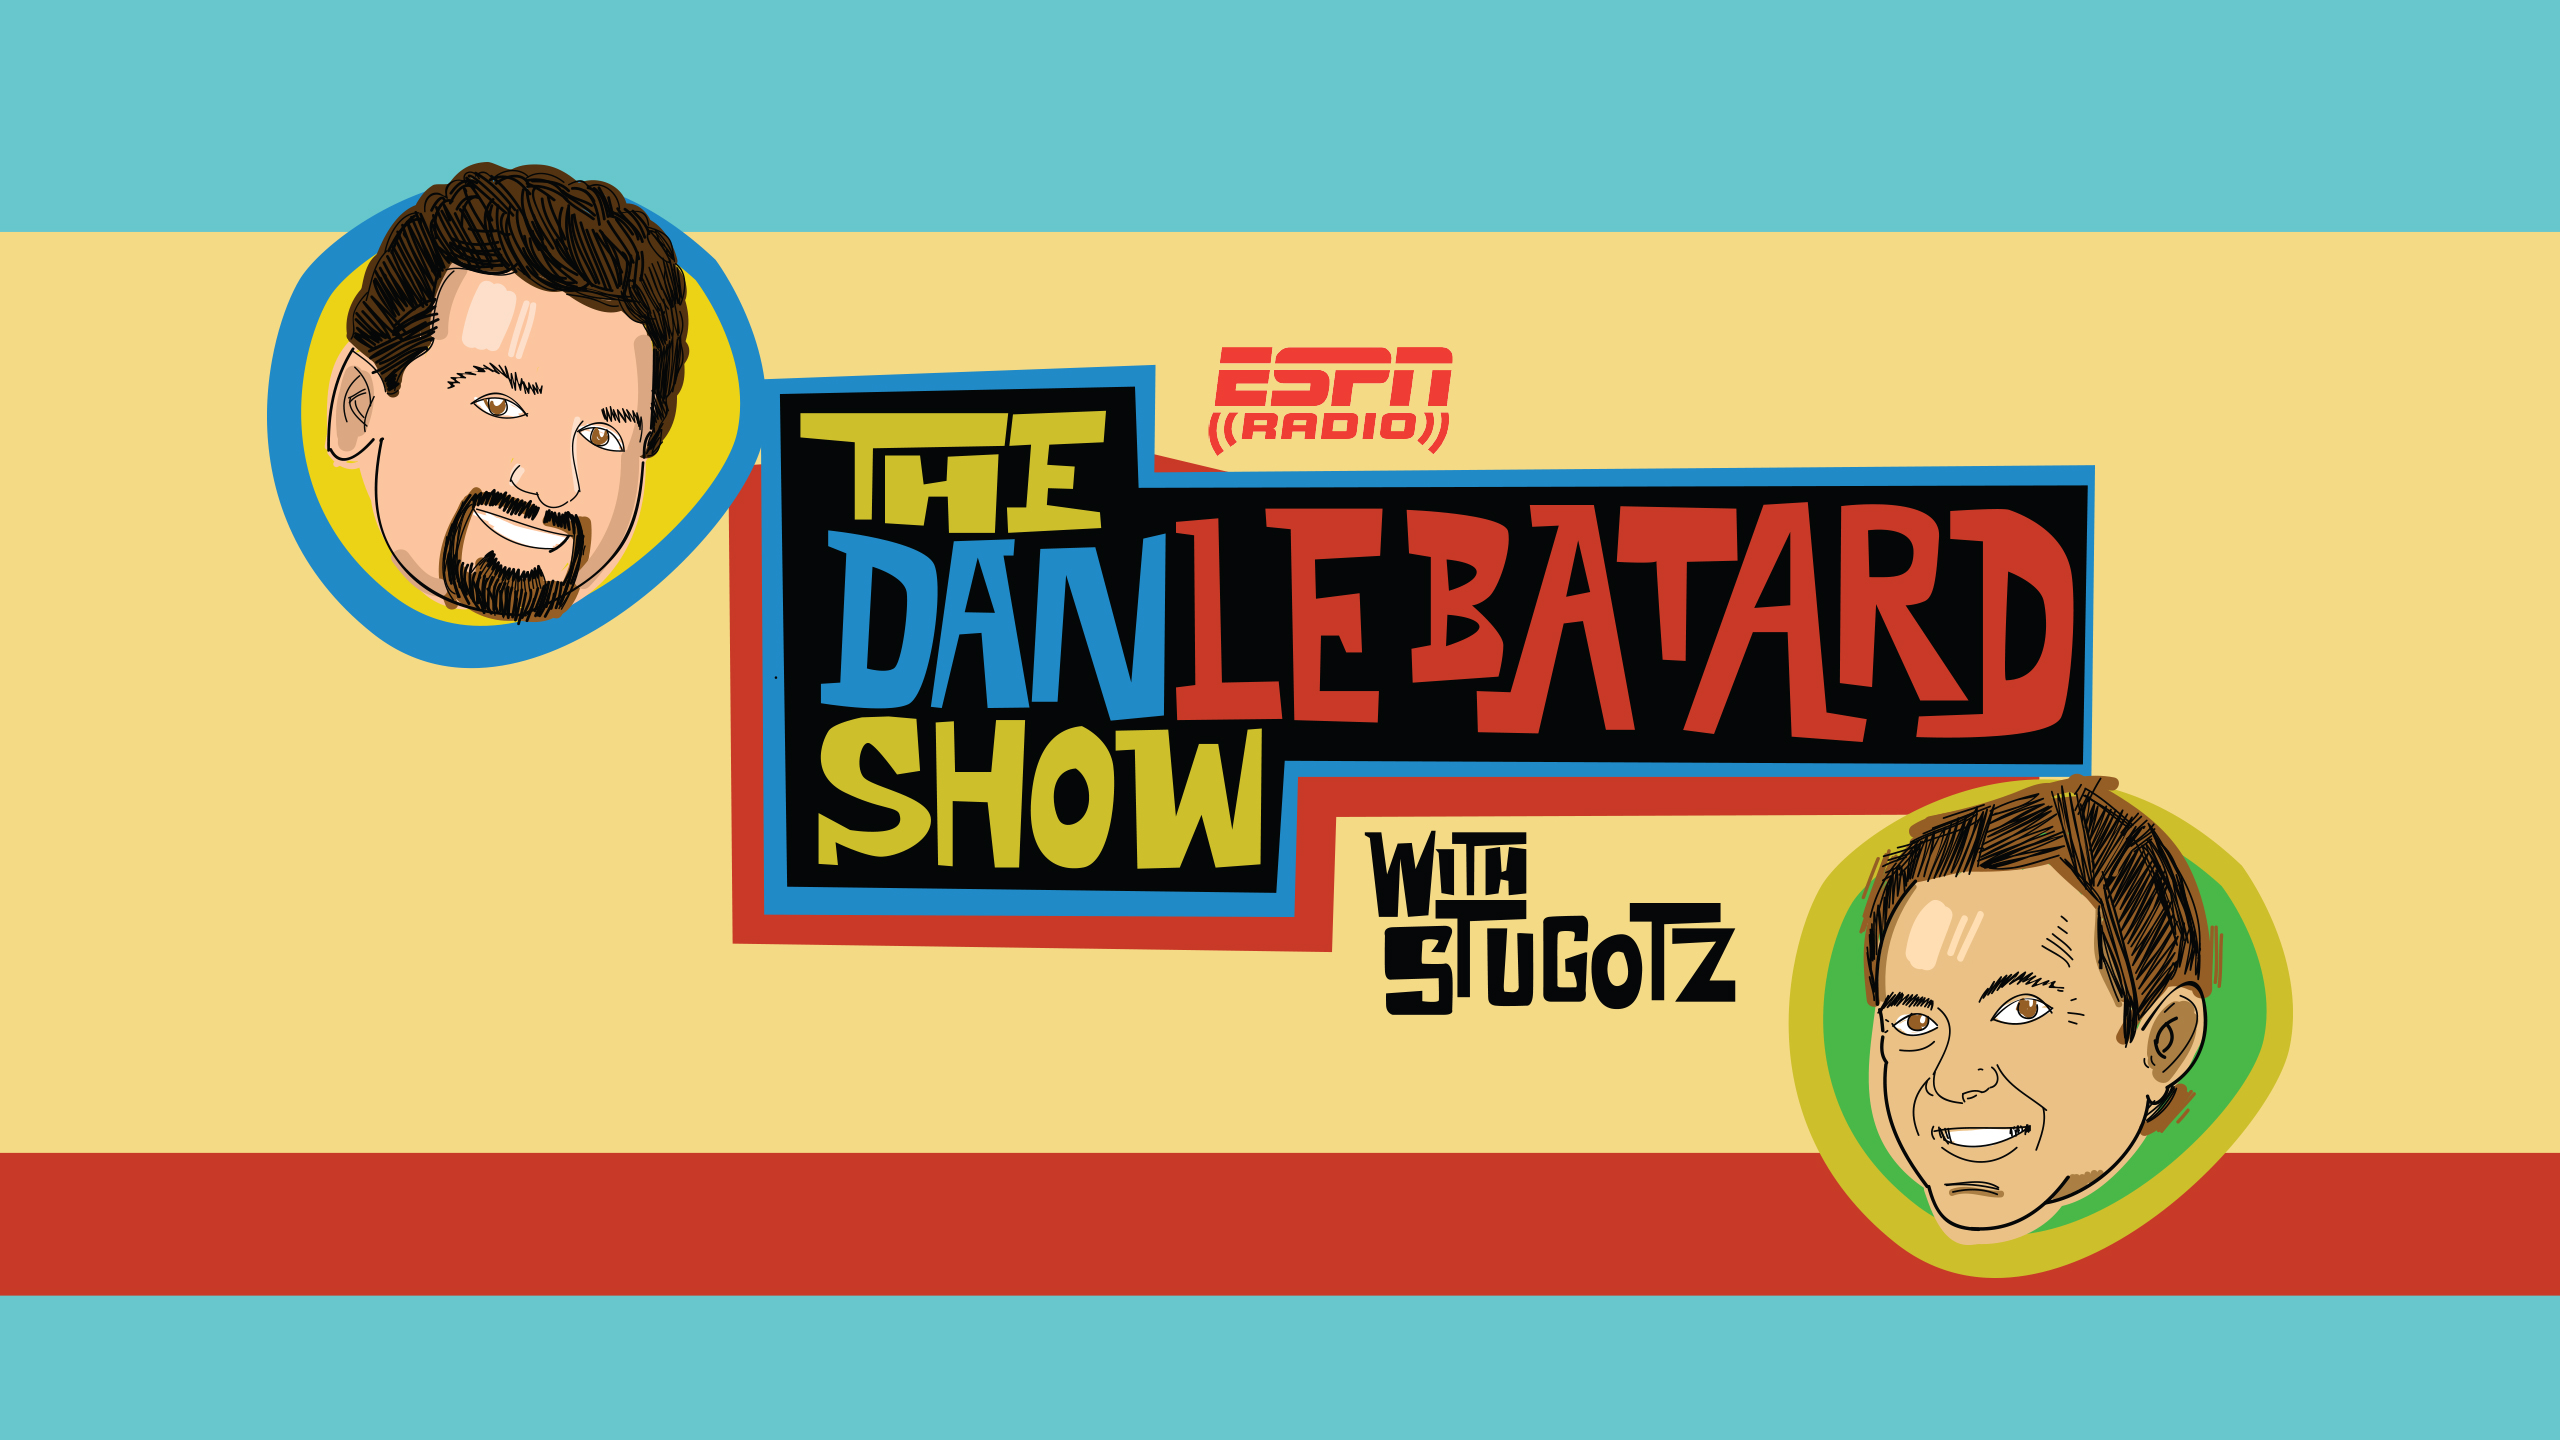 Fri, 2/22 - The Dan Le Batard Show with Stugotz Presented by Progressive